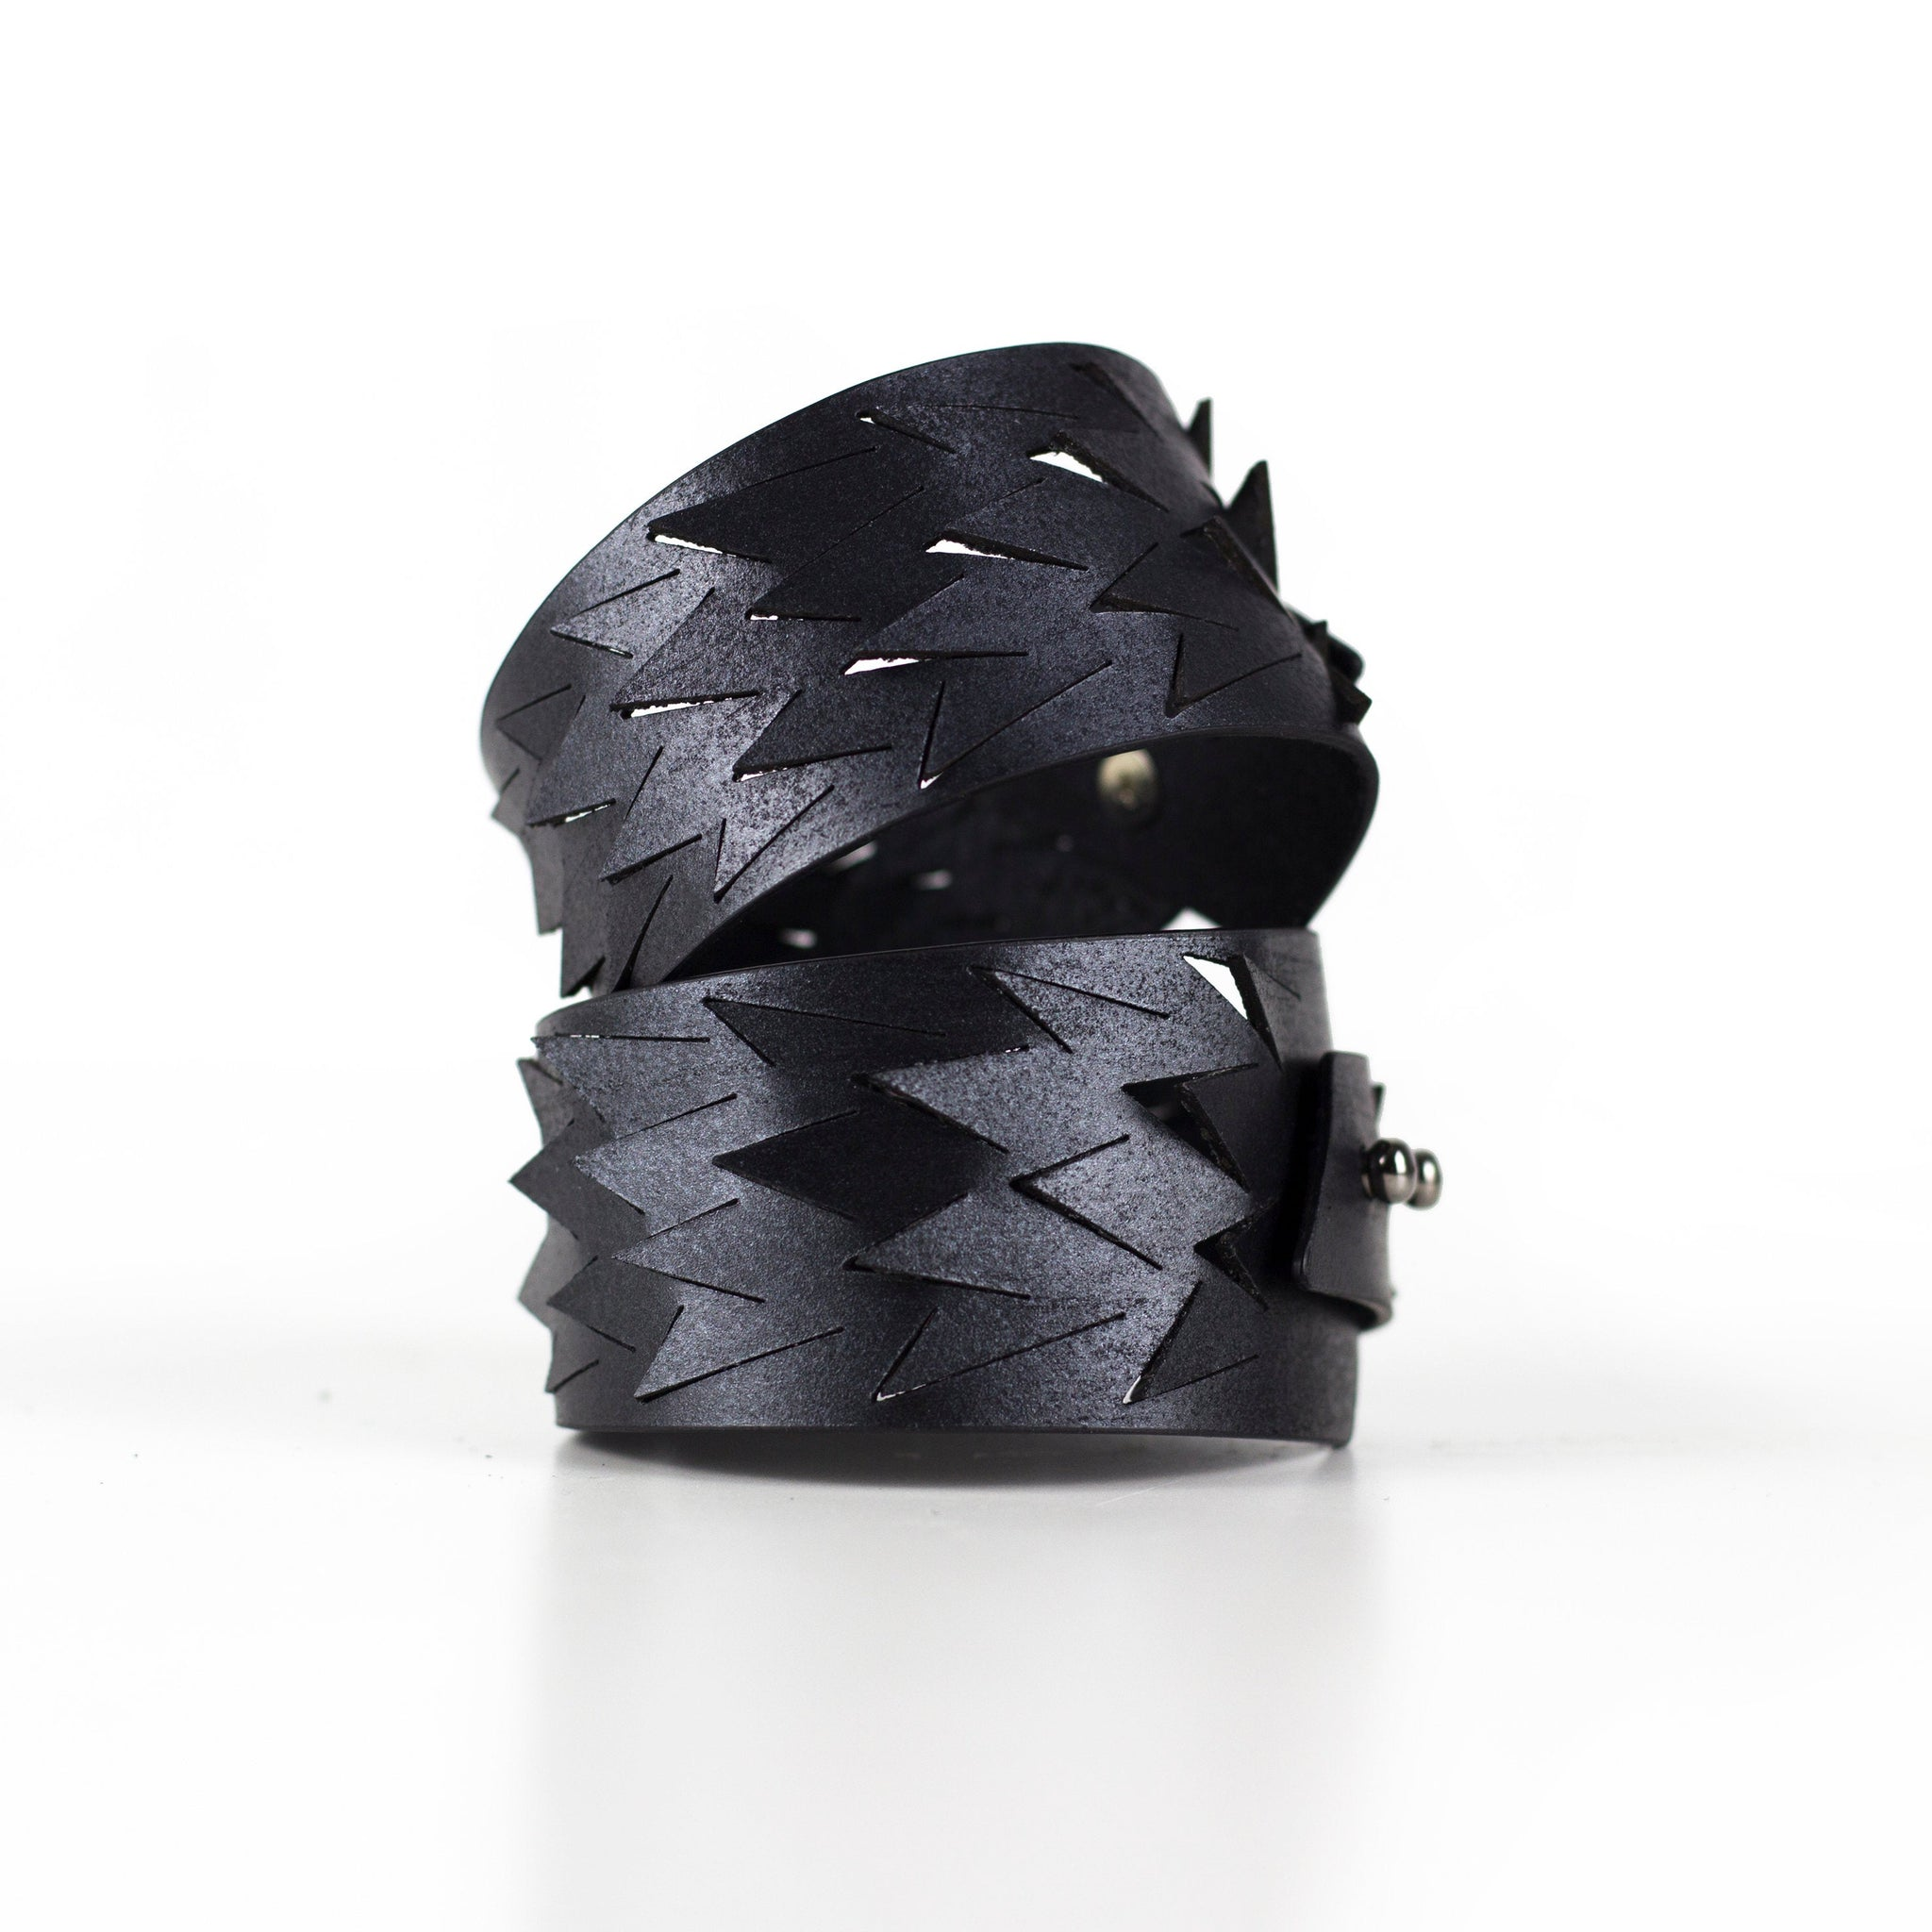 'IRIS' genuine leather cuff bracelet, hollow cut out wide women's bangles